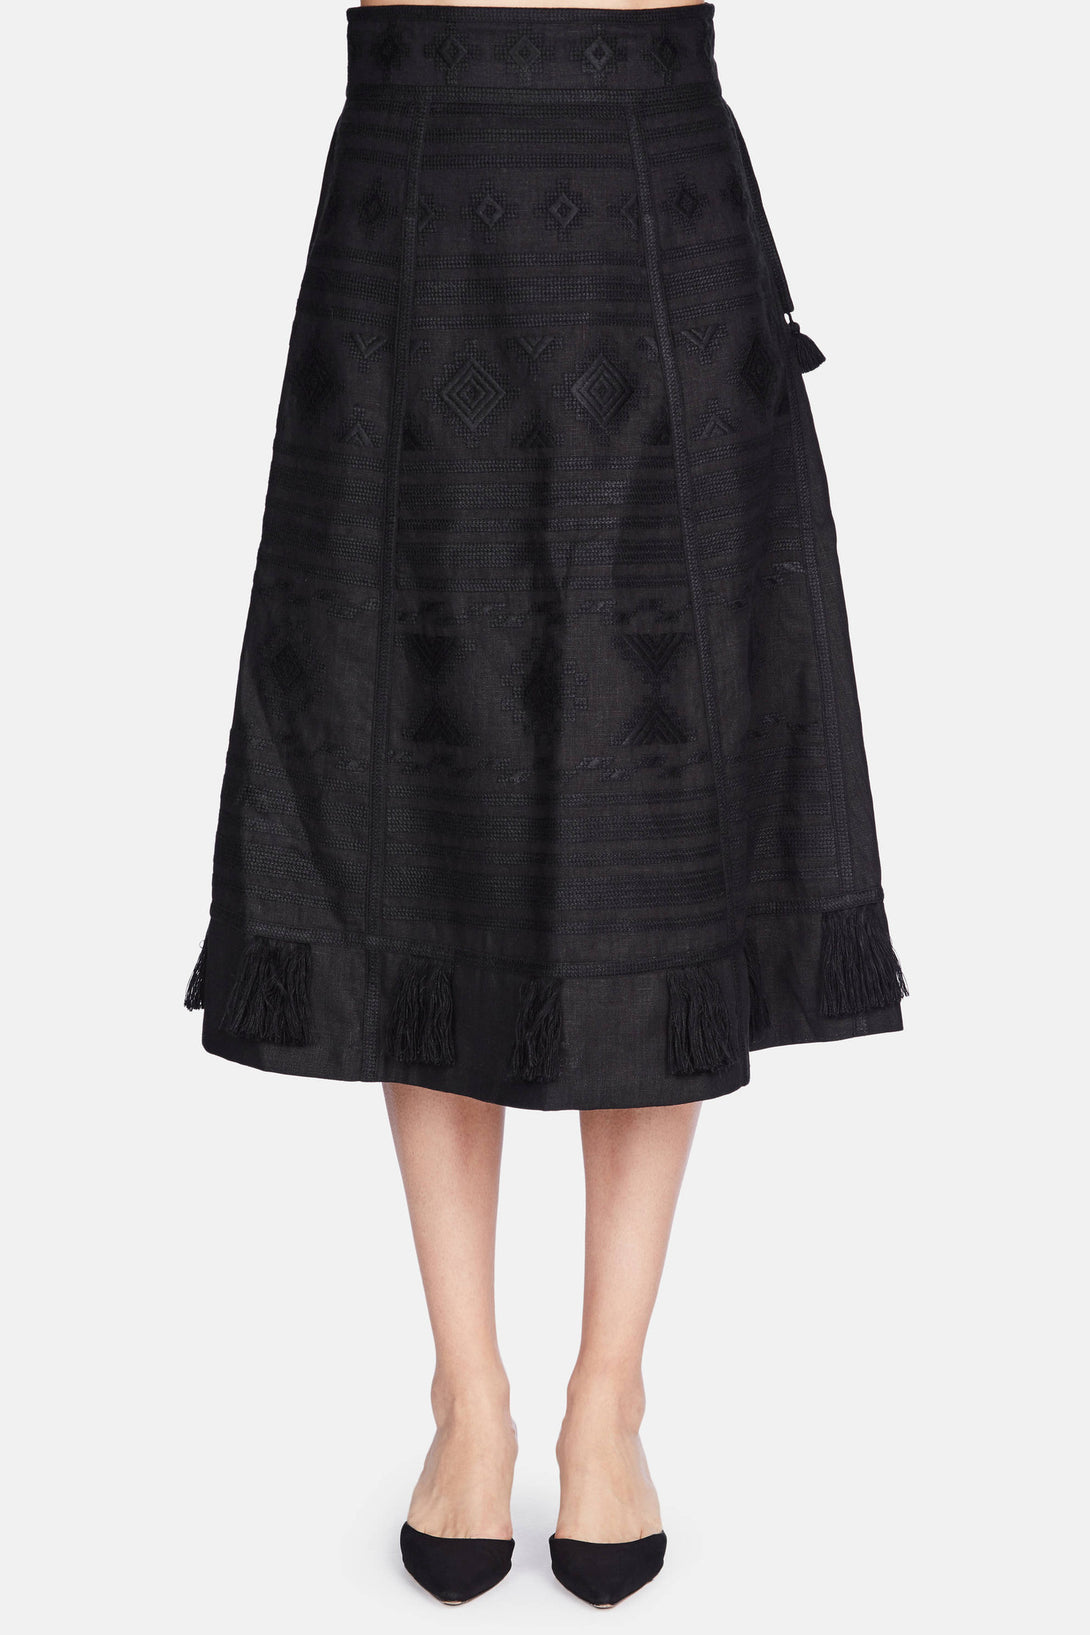 Croatia Skirt - Black